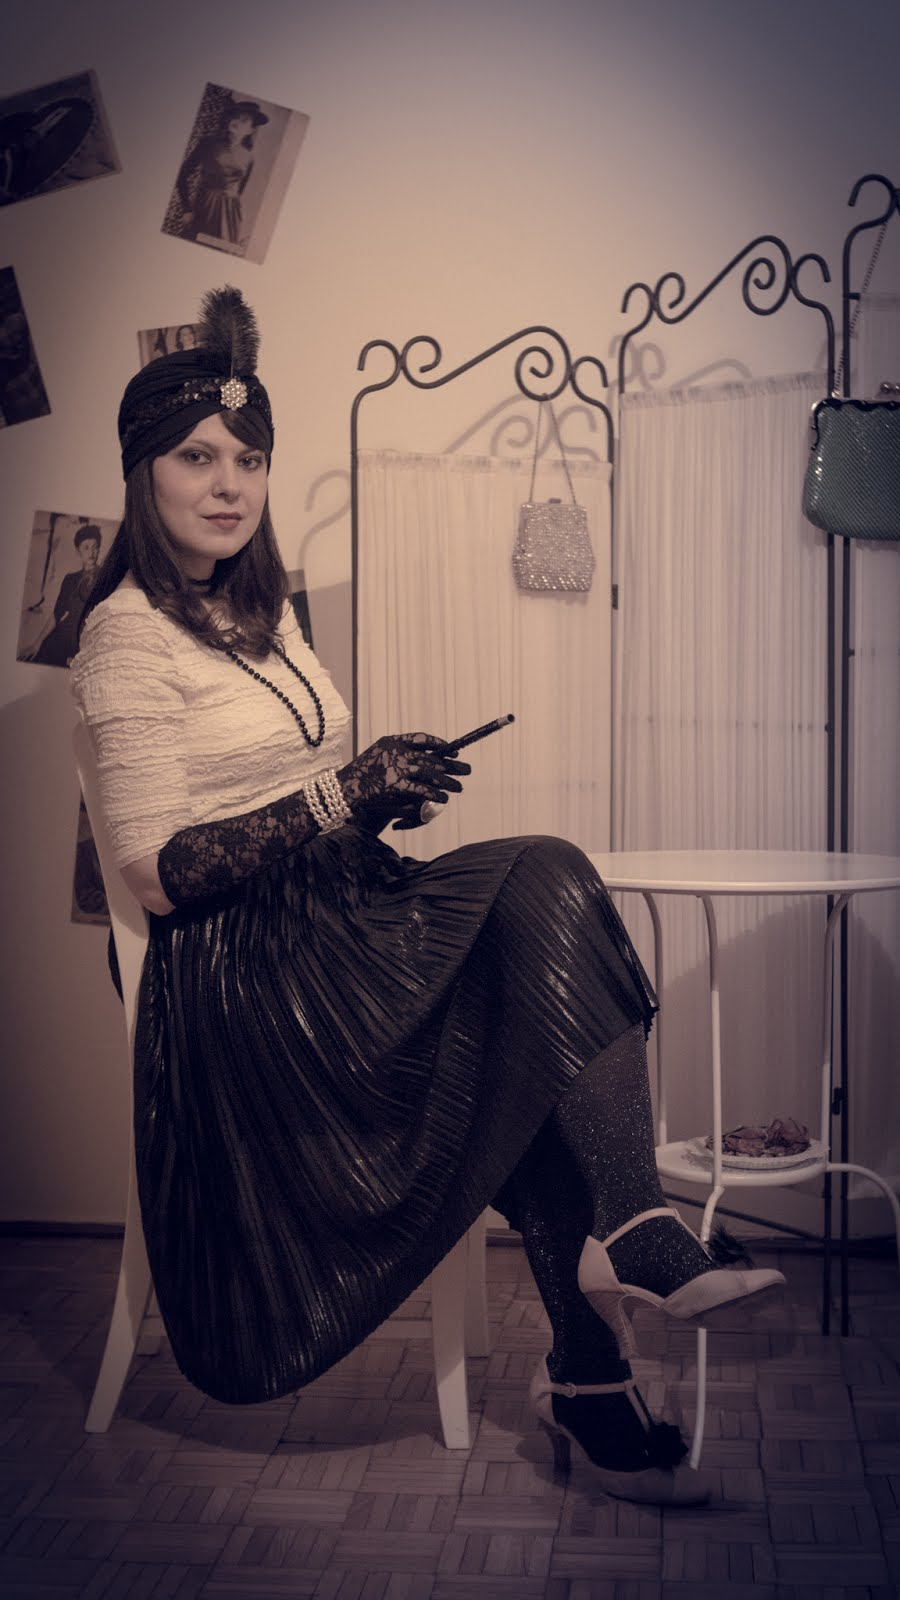 great Gatsby outfit party inspiration pleated skirt stradivarius lace H&M top t strap shoes bata turban roaring 20s style twenties flapper girl cigarette zara belt sparkly black lace gloves